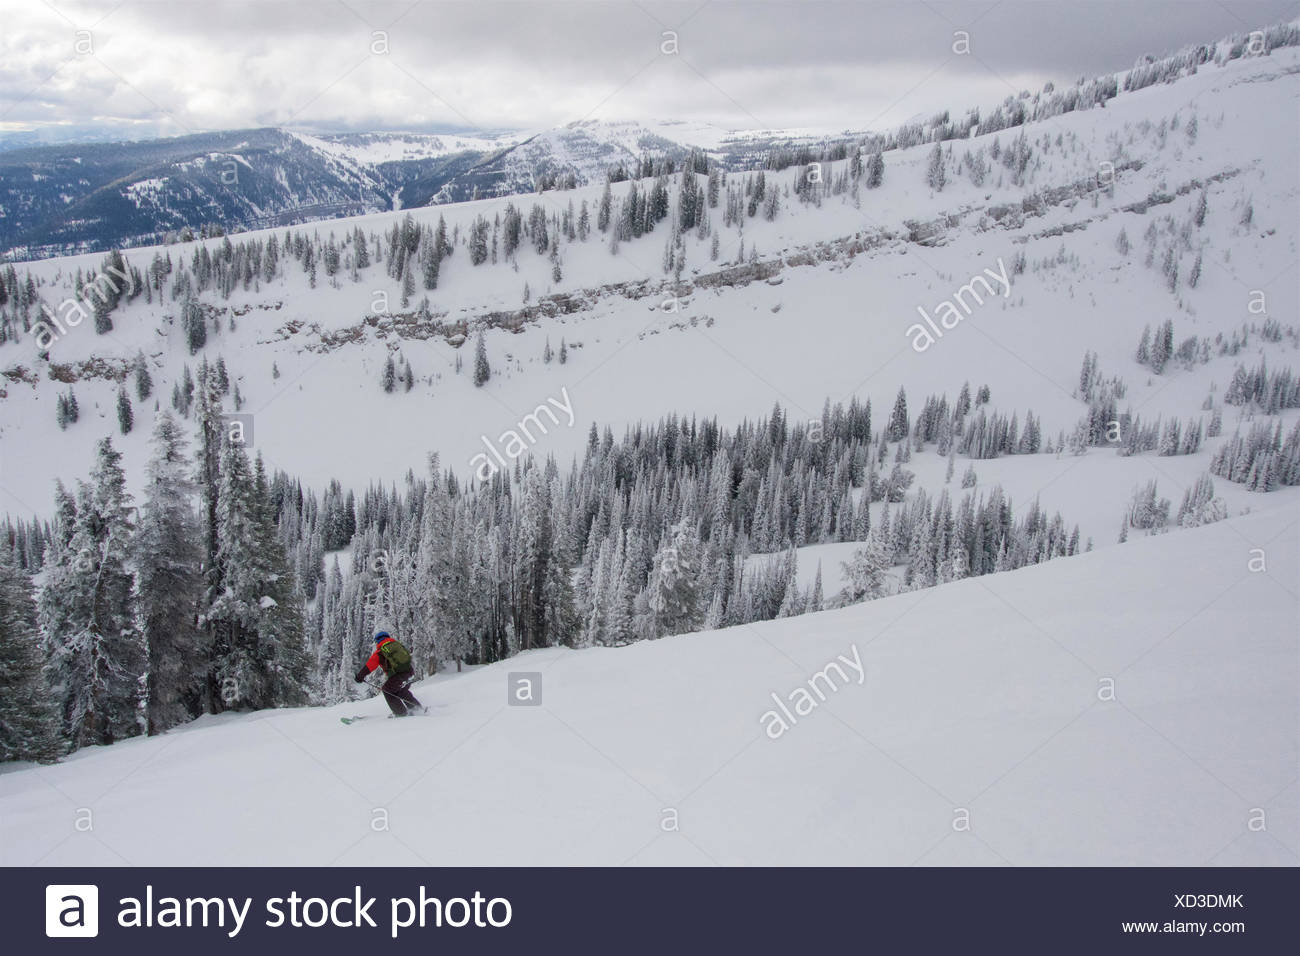 A teen boy downhill skiing near rime covered trees in the mountains on a cloudy day. - Stock Image